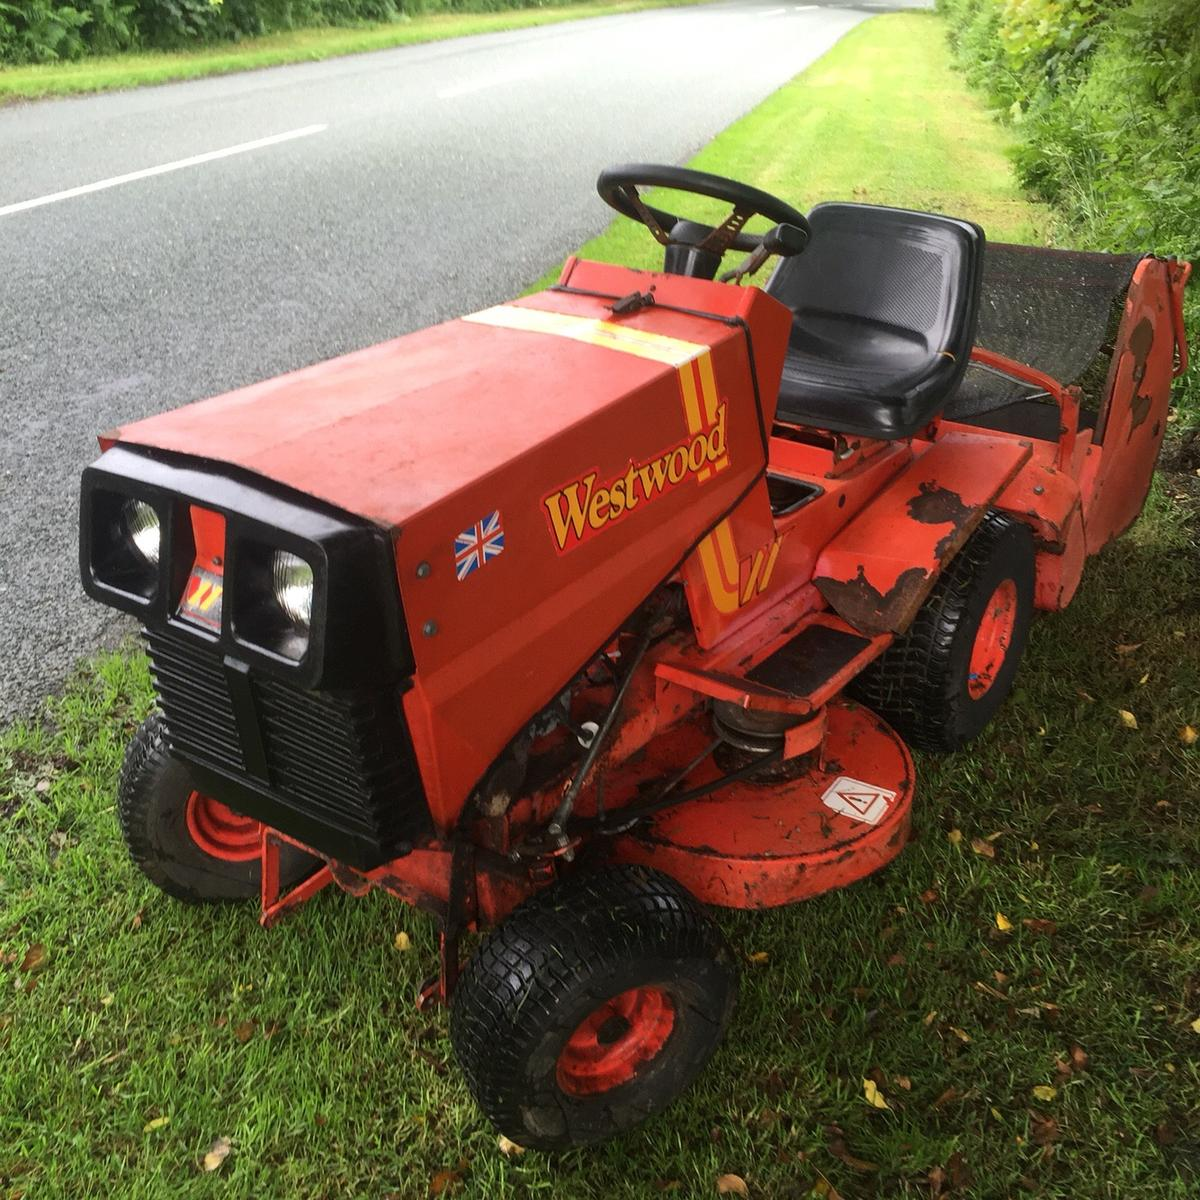 Westwood t1200 ride on mower in Prees for £400 00 for sale